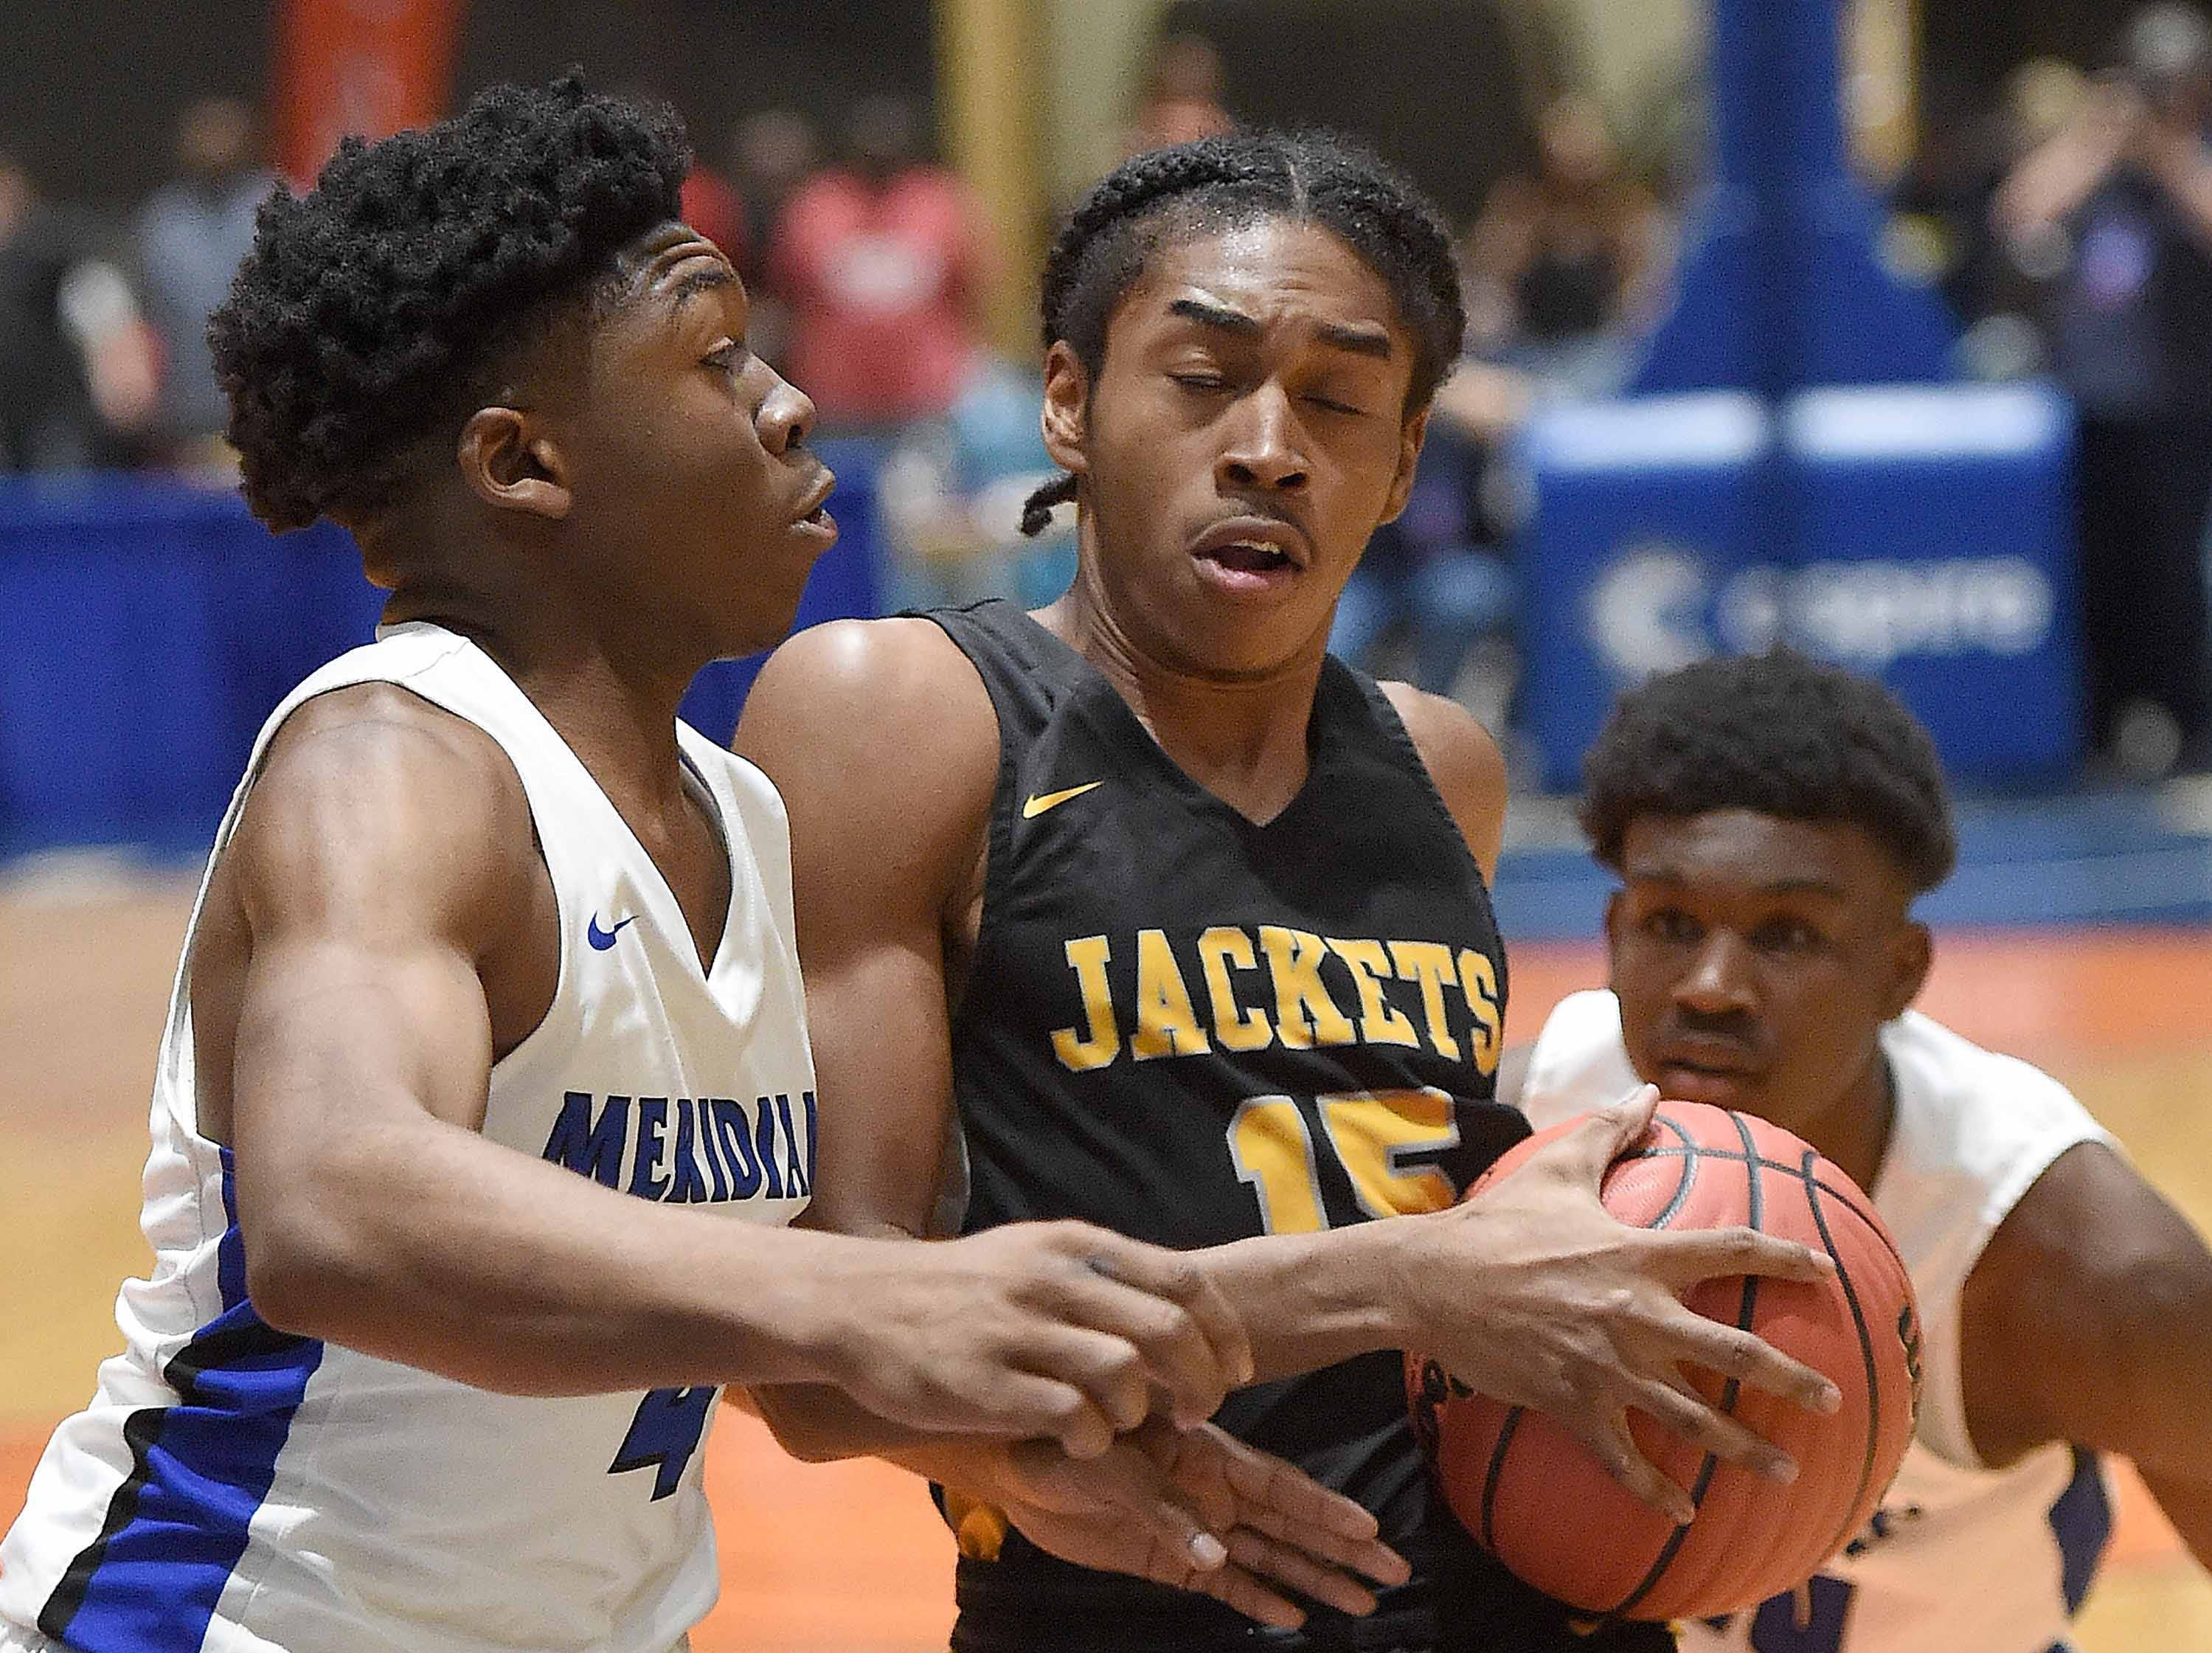 Starkville's Jamarrion Brown (15) tries to split a Meridian's double team in the Class 6A finals of the MHSAA C Spire State Basketball Championships at the Mississippi Coliseum in Jackson, Miss., on Saturday, March 9, 2019.